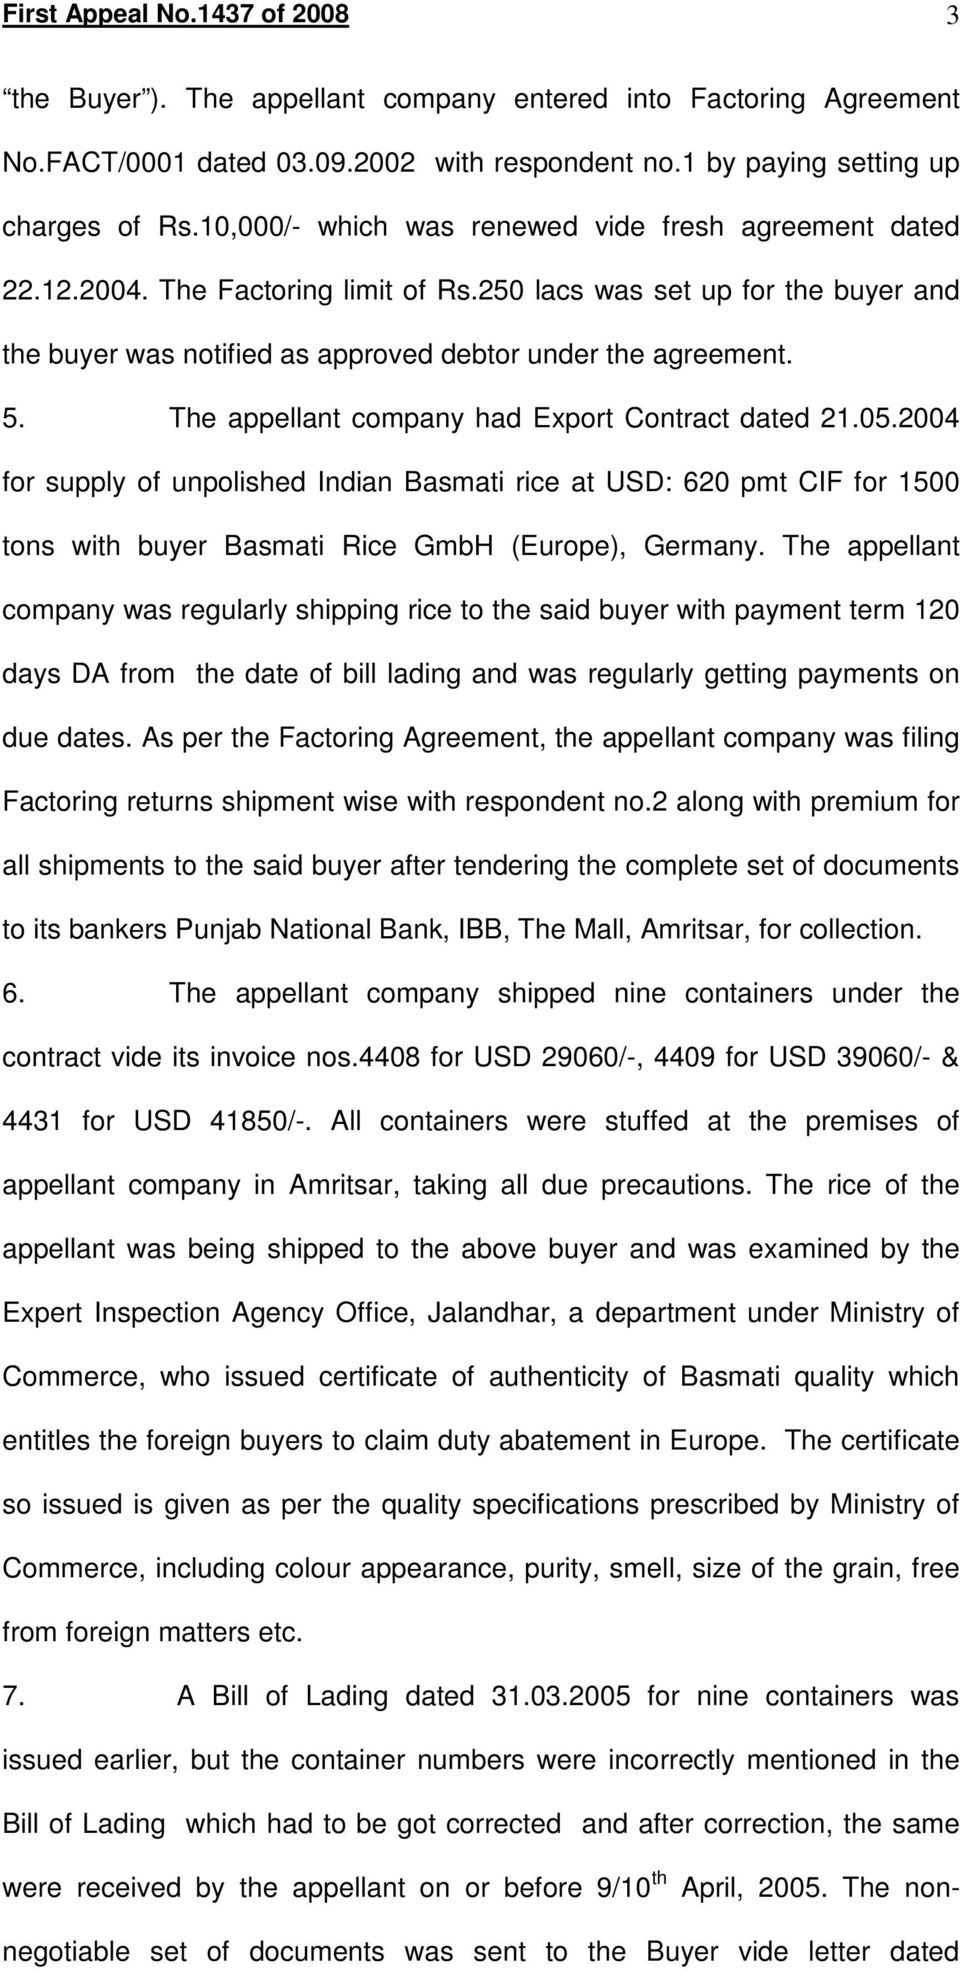 The appellant company had Export Contract dated 21.05.2004 for supply of unpolished Indian Basmati rice at USD: 620 pmt CIF for 1500 tons with buyer Basmati Rice GmbH (Europe), Germany.